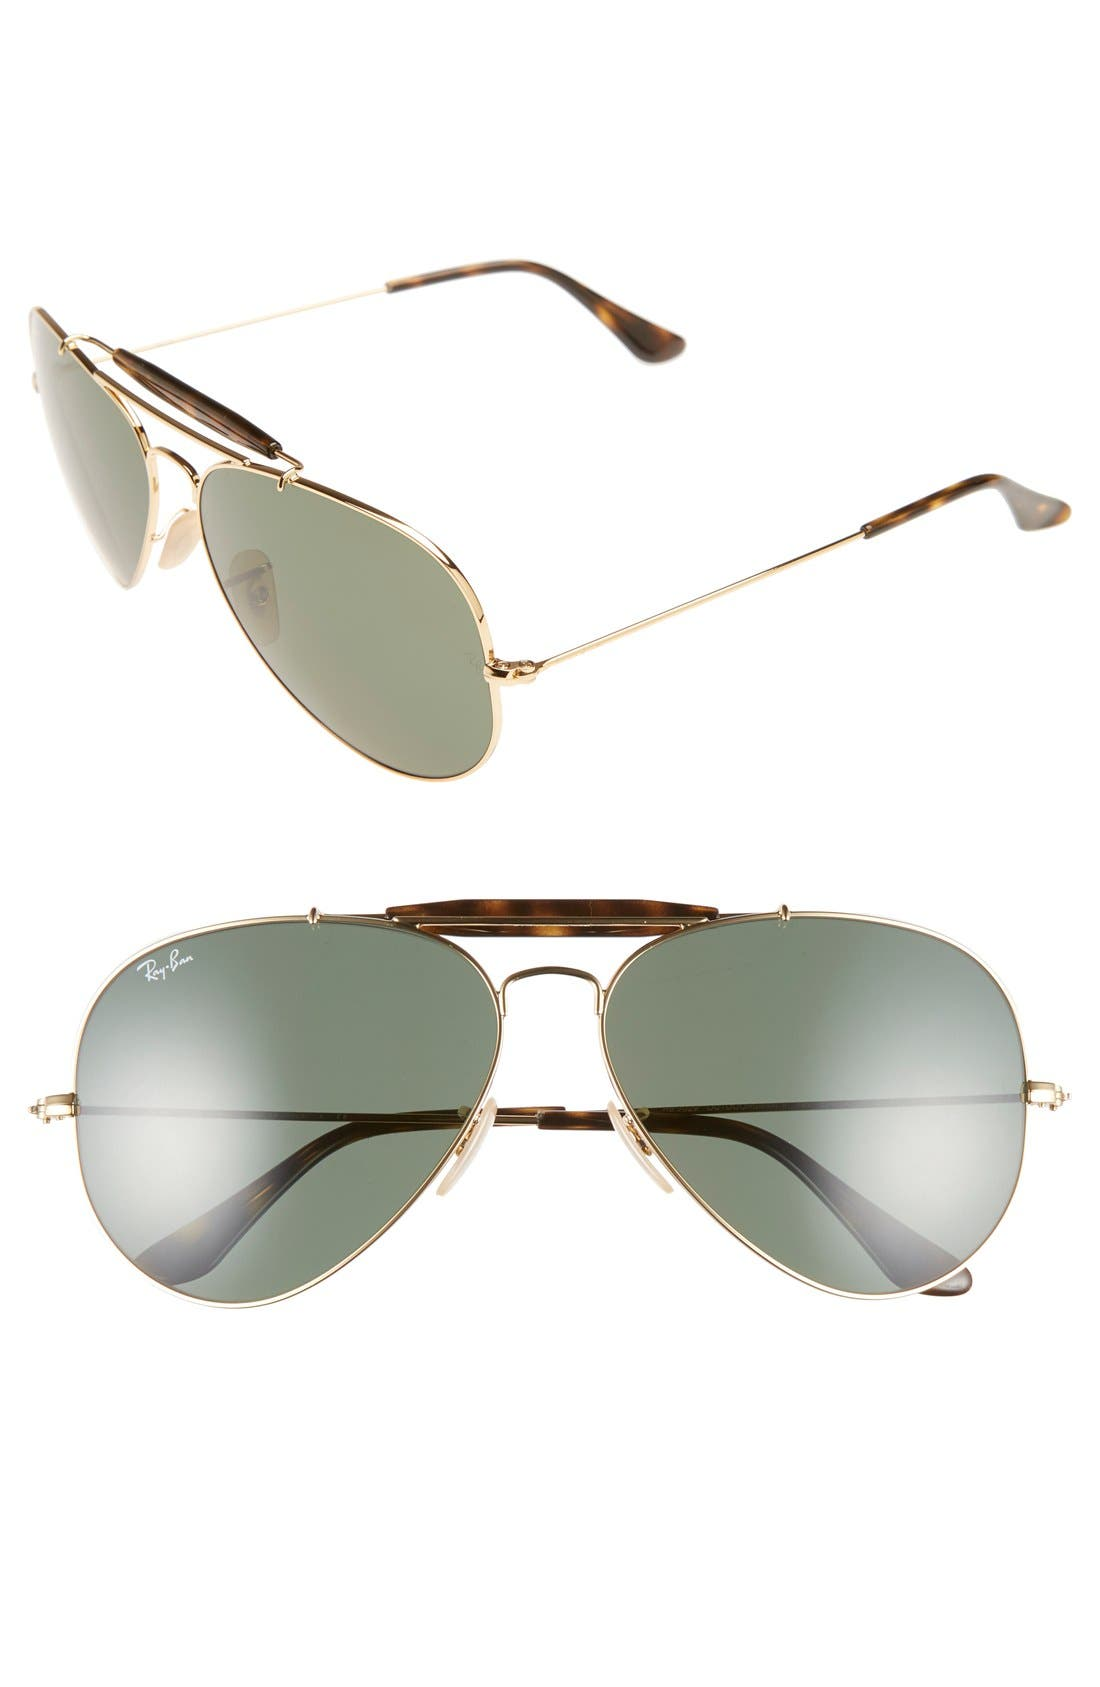 RAY-BAN Outdoorsman II 62mm Sunglasses